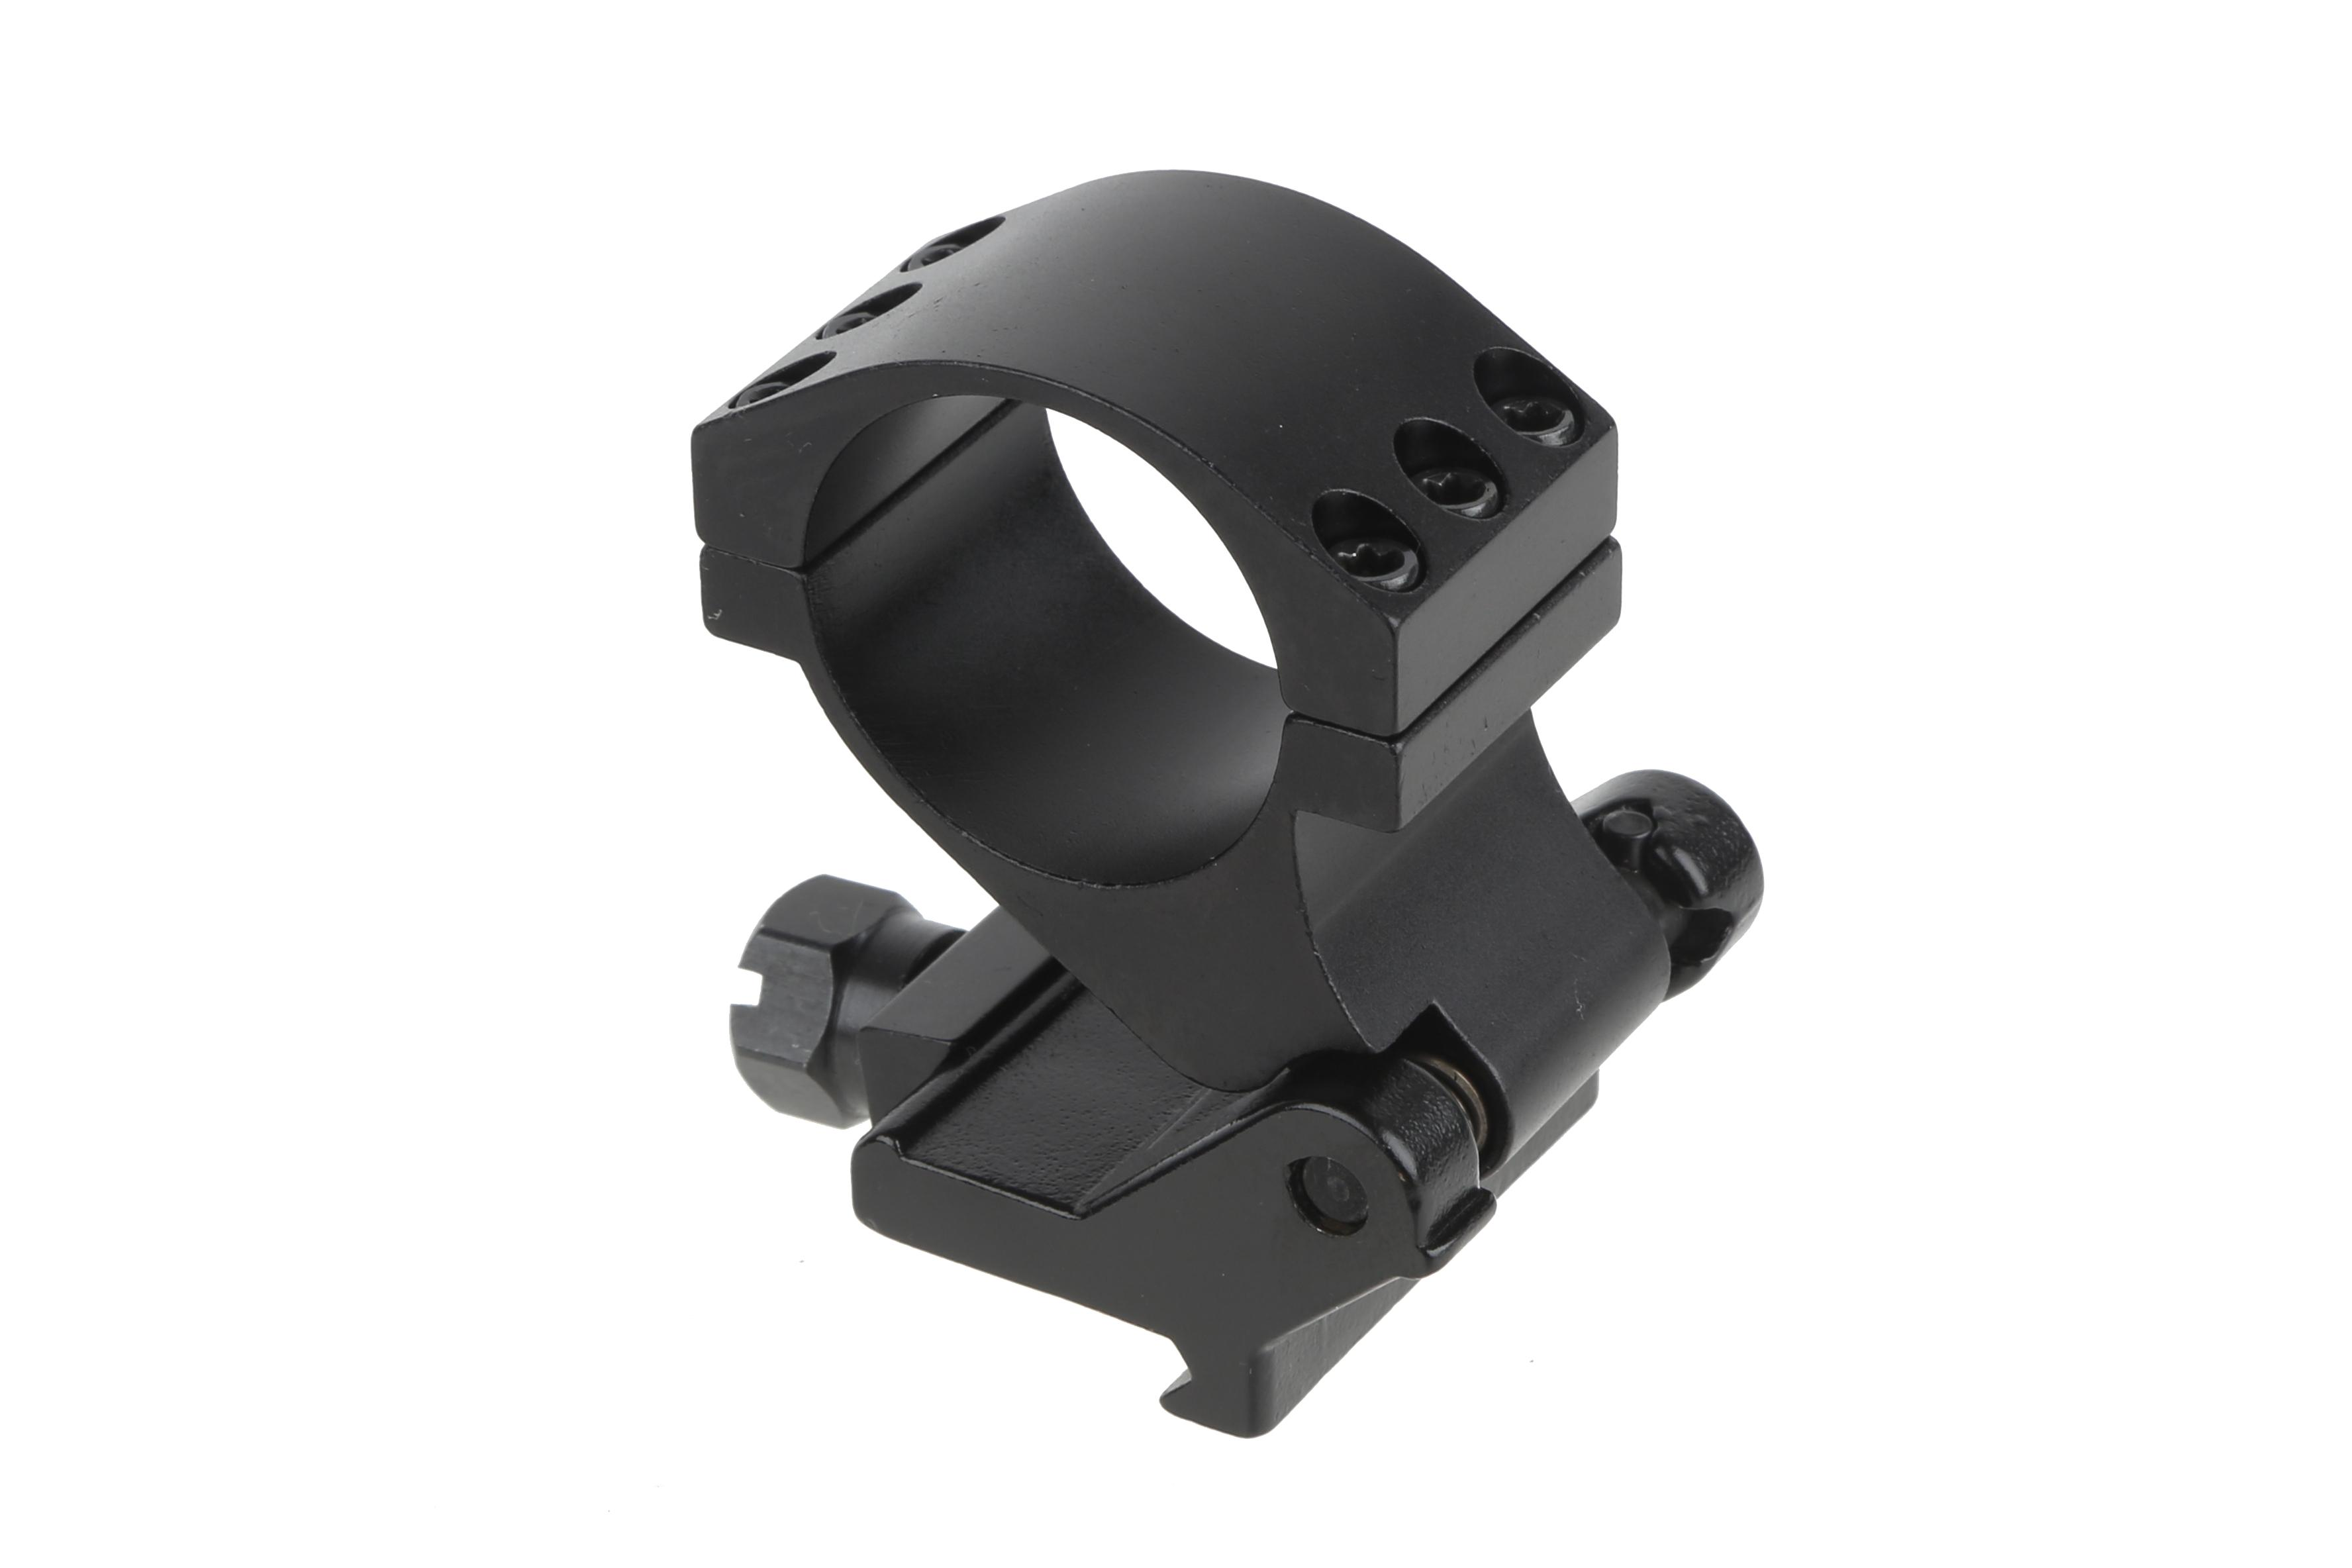 The Primary Arms flip to side magnifier mount is for use with 1/3rd cowitness height red dots